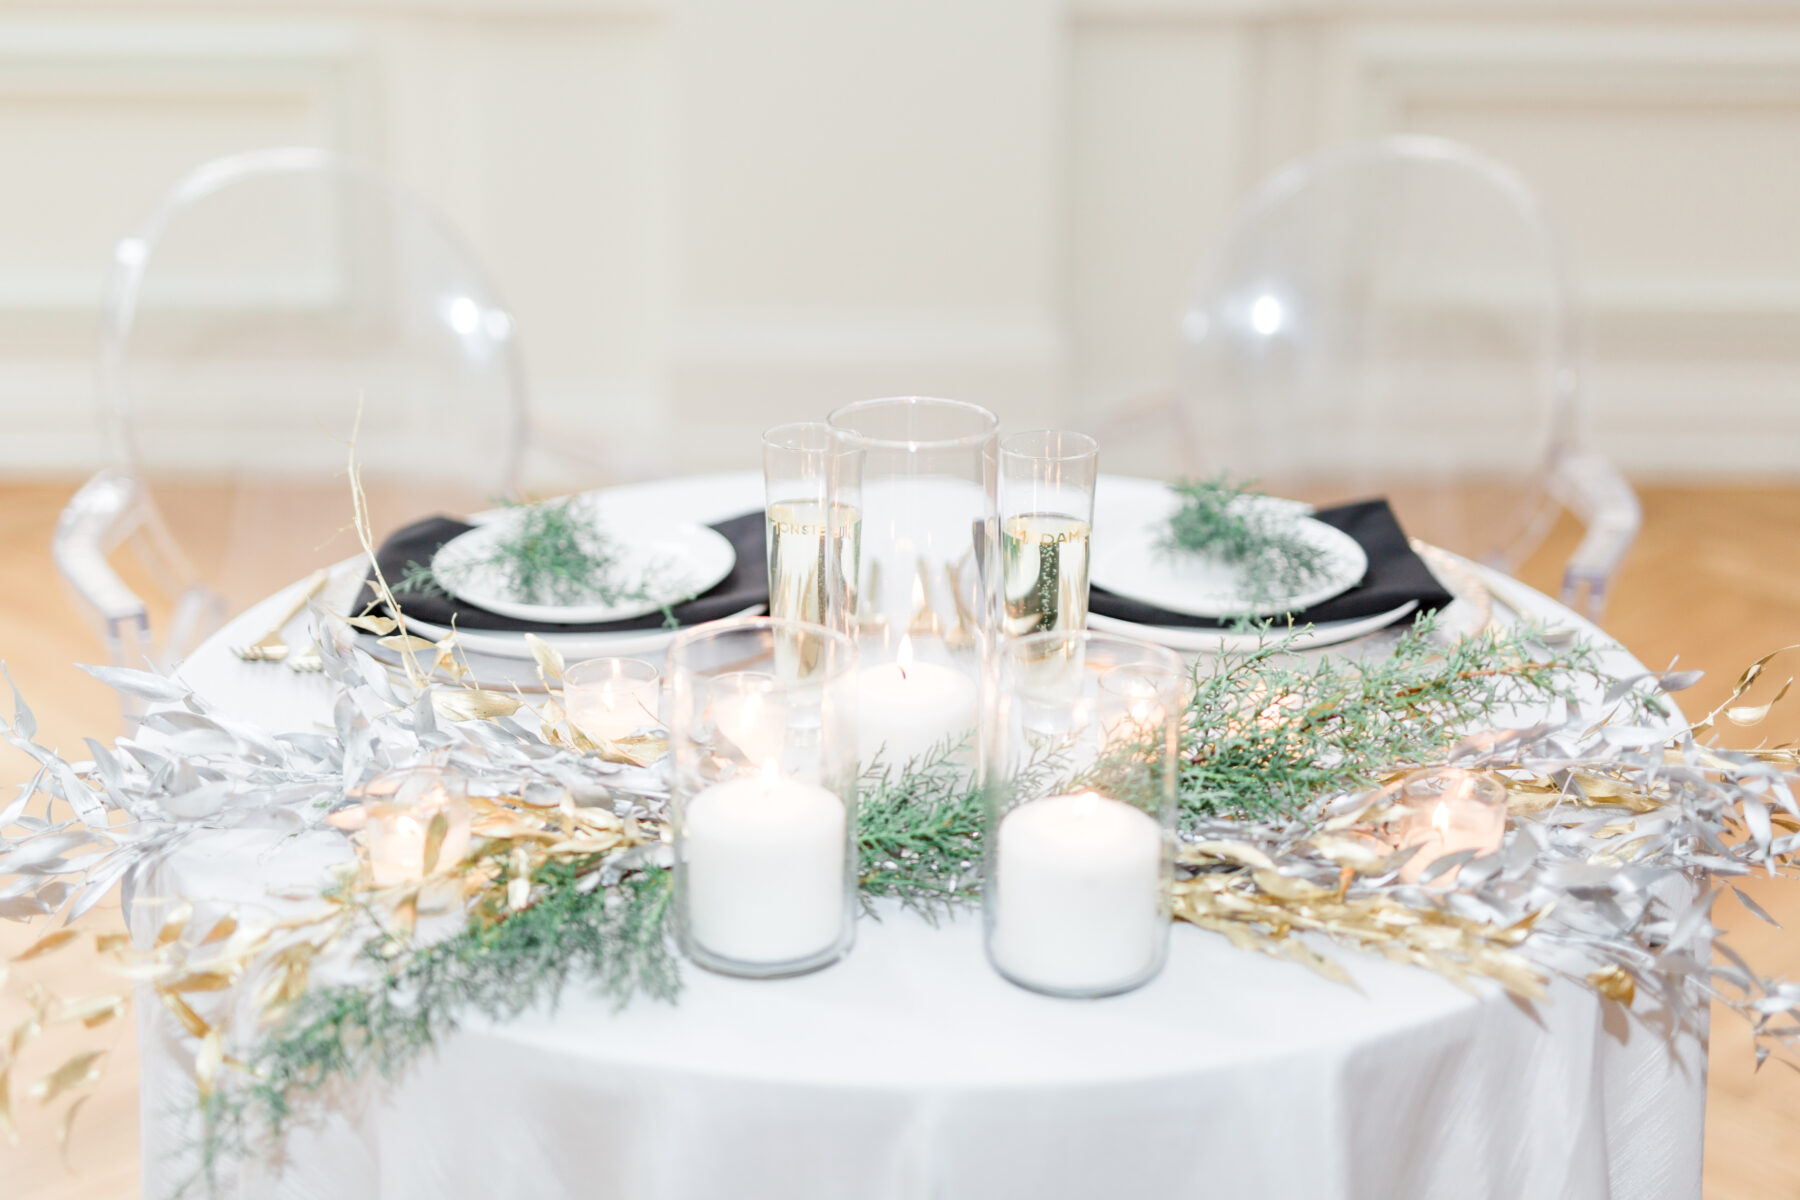 Winter wedding table decor: Classic, Yet Modern New Years Eve Wedding Inspiration featured on Nashville Bride Guide